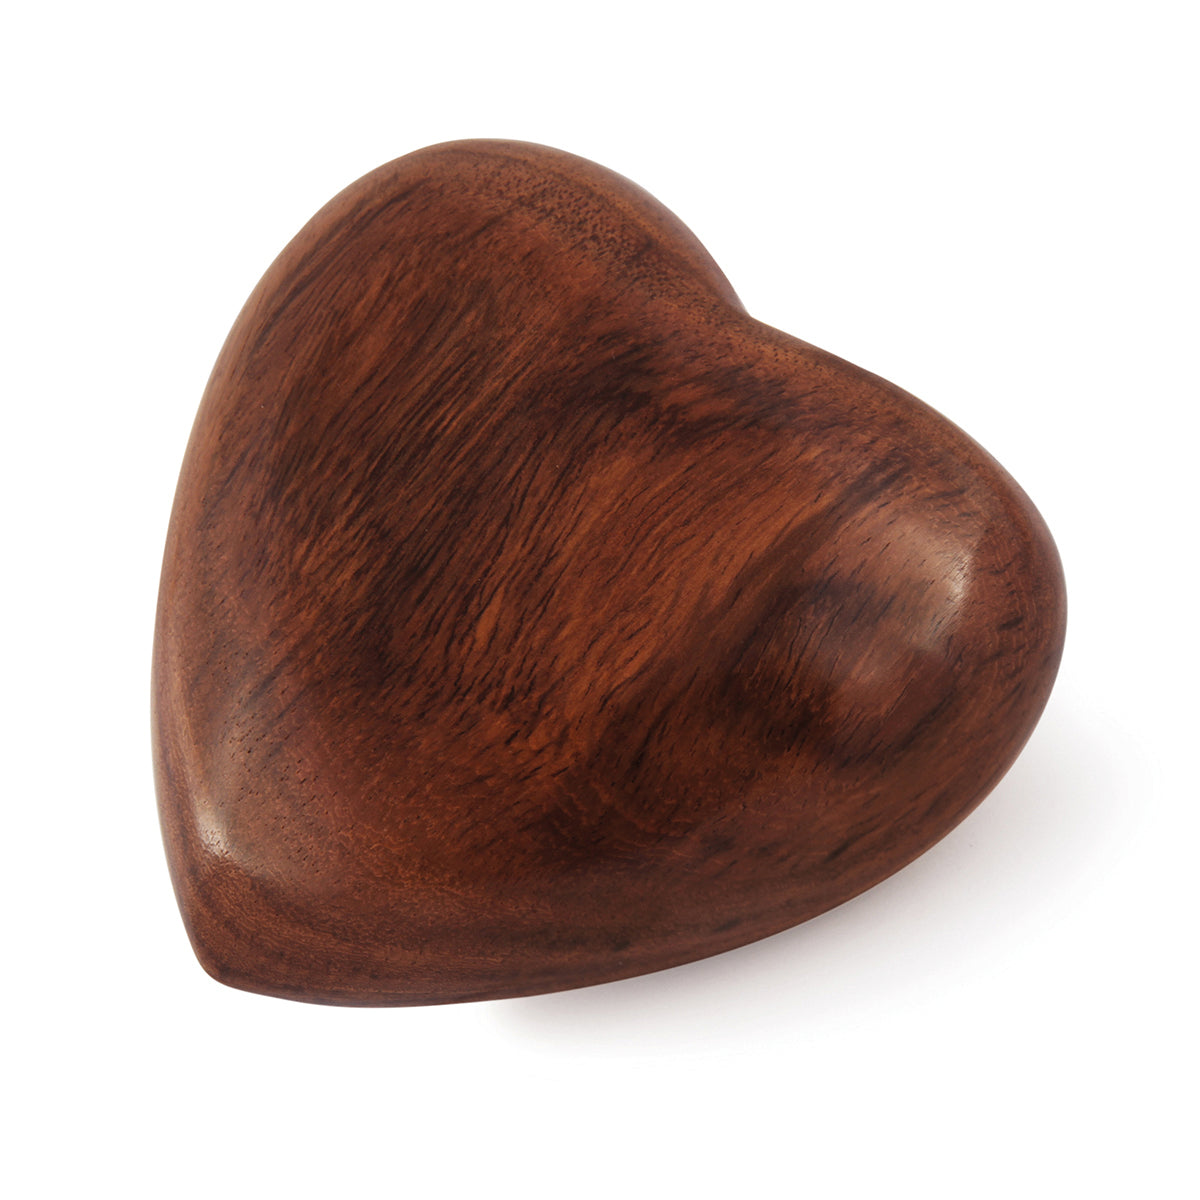 Timber Heart Keepsake